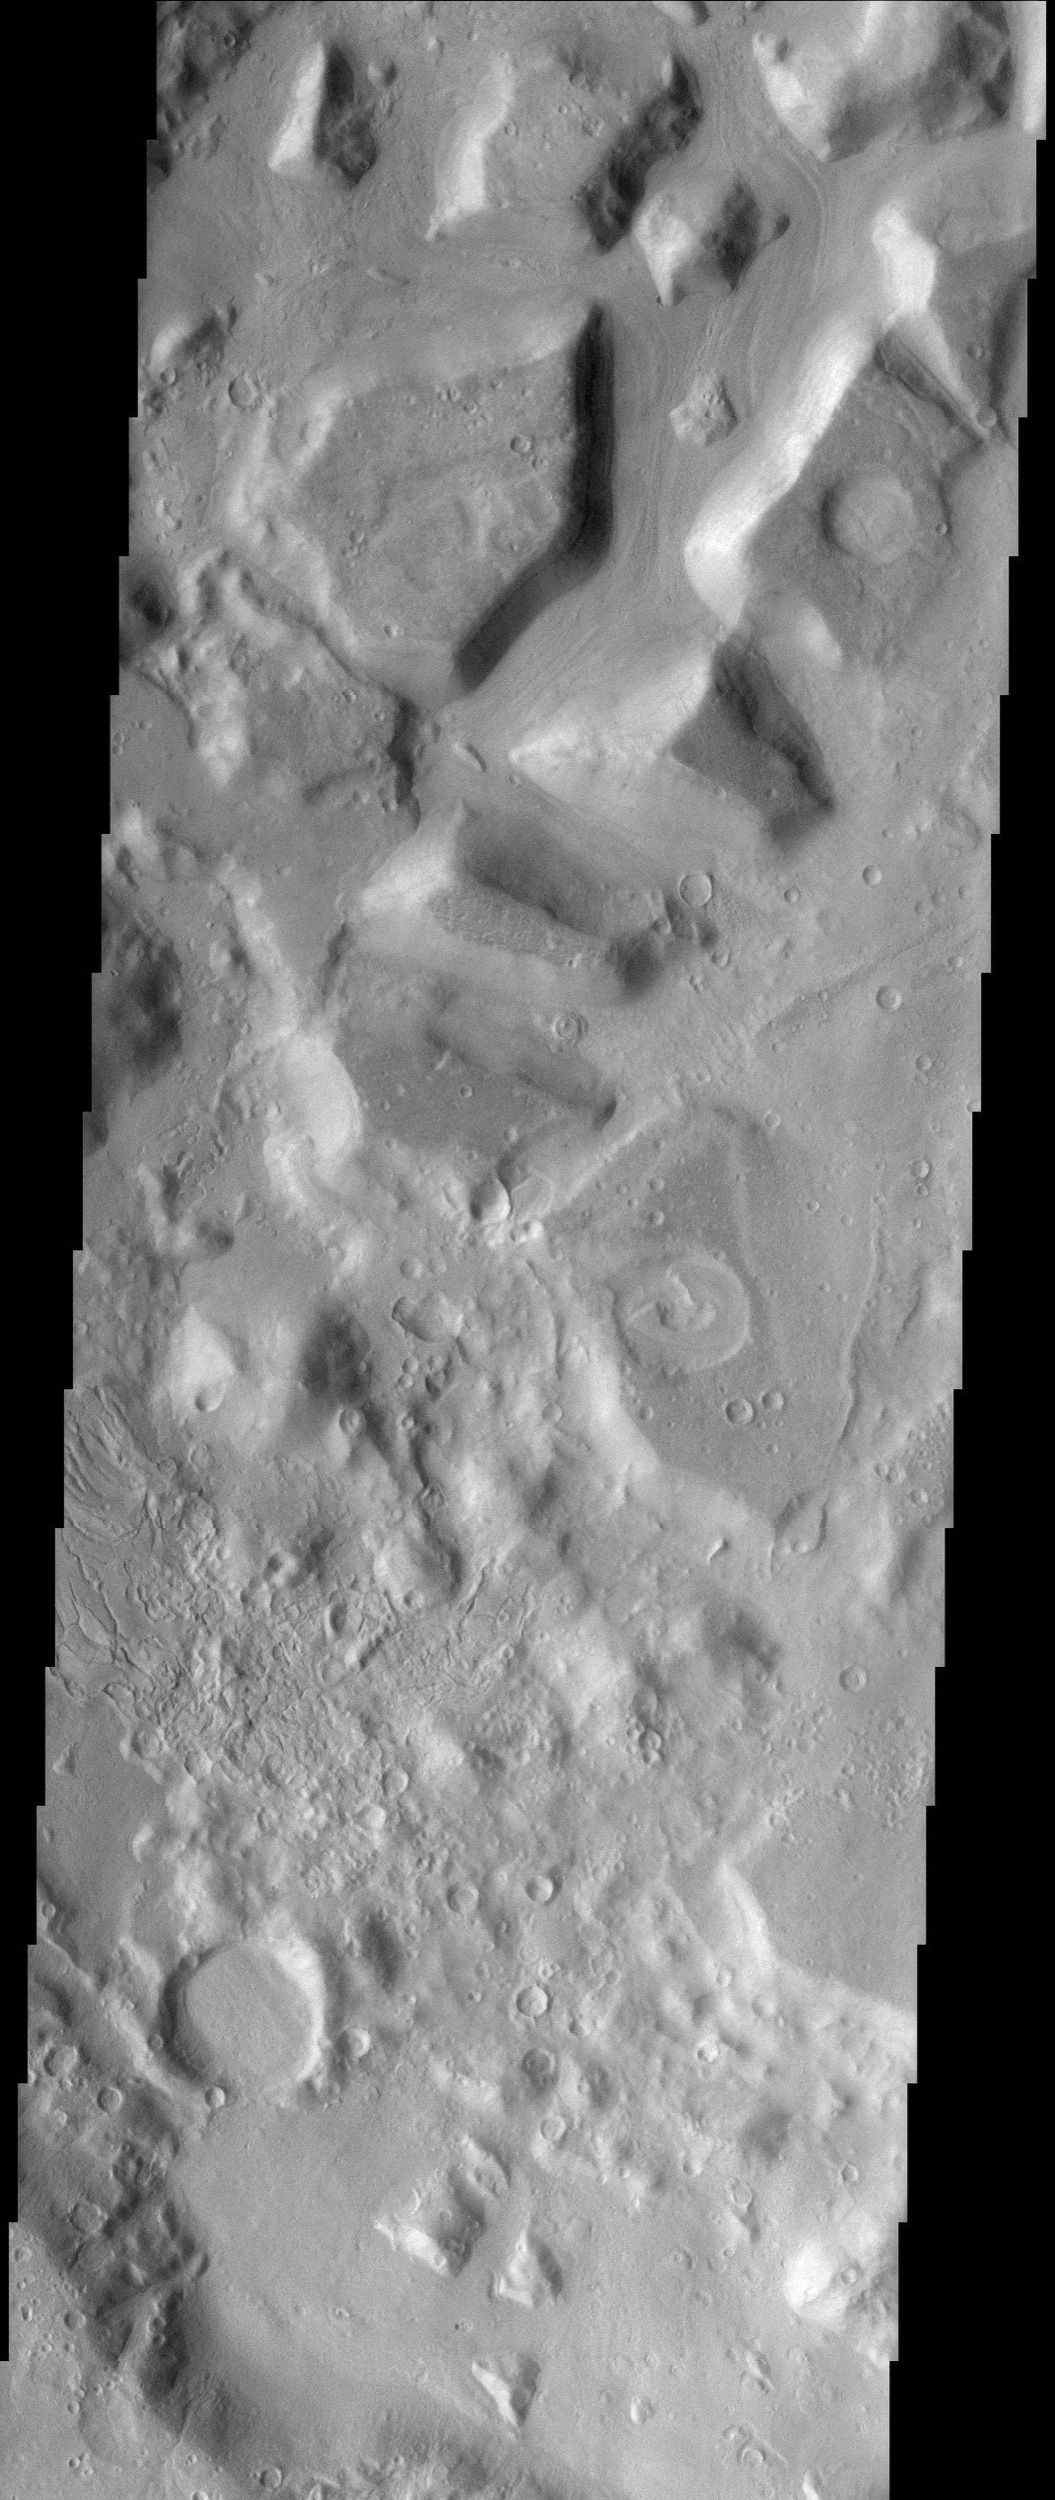 This NASA Mars Odyssey image shows the dissected interior of a crater in the Cydonia region of Mars. The flat-topped buttes and mesas in the northern portion of the image were once a continuous layer of material that filled the crater.